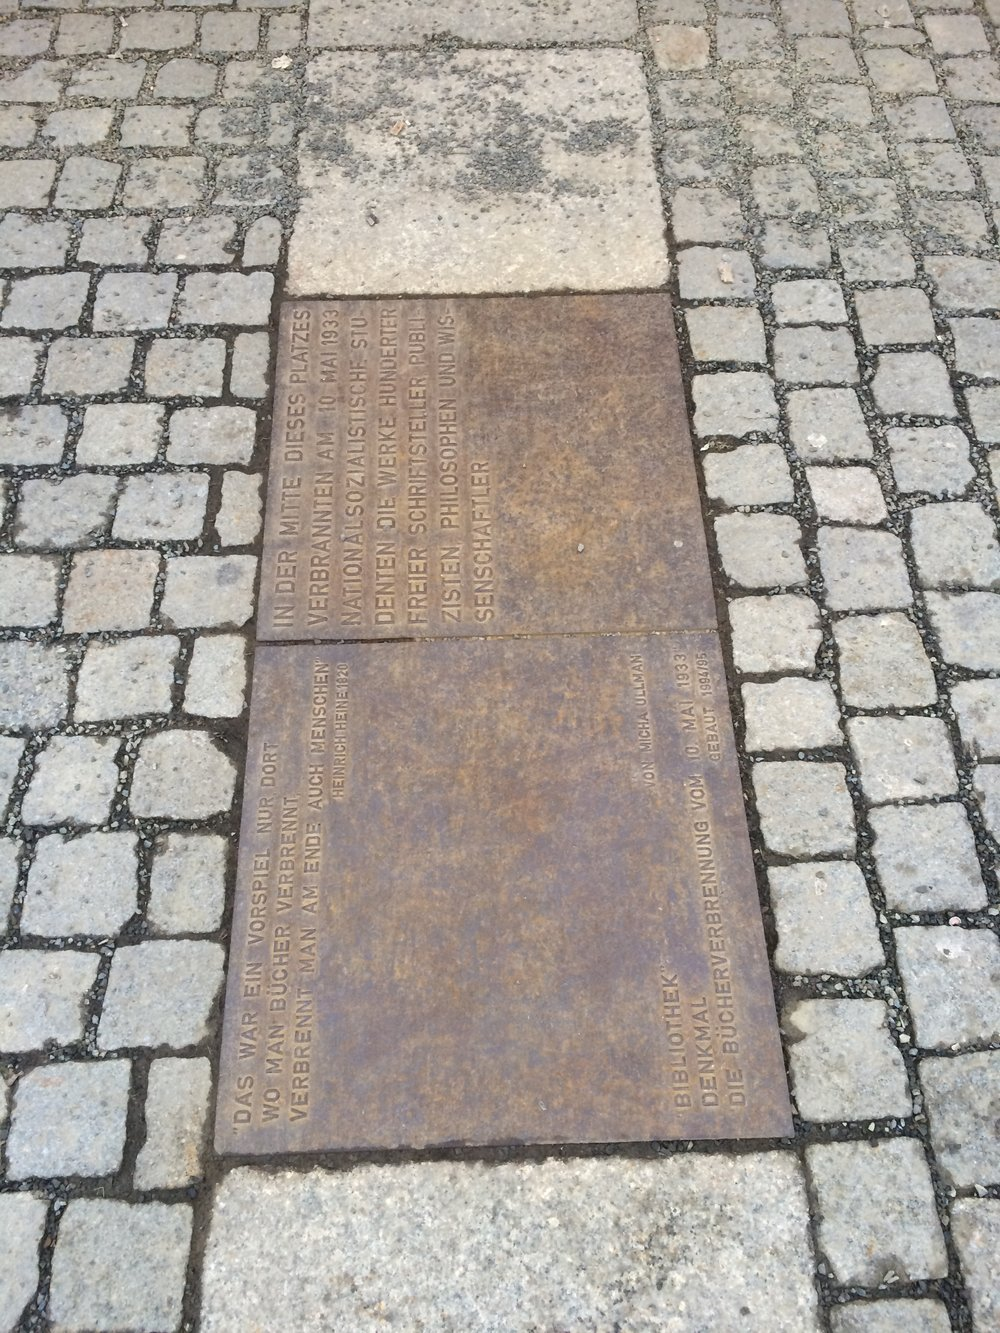 The pathway marking where the wall was throughout the city